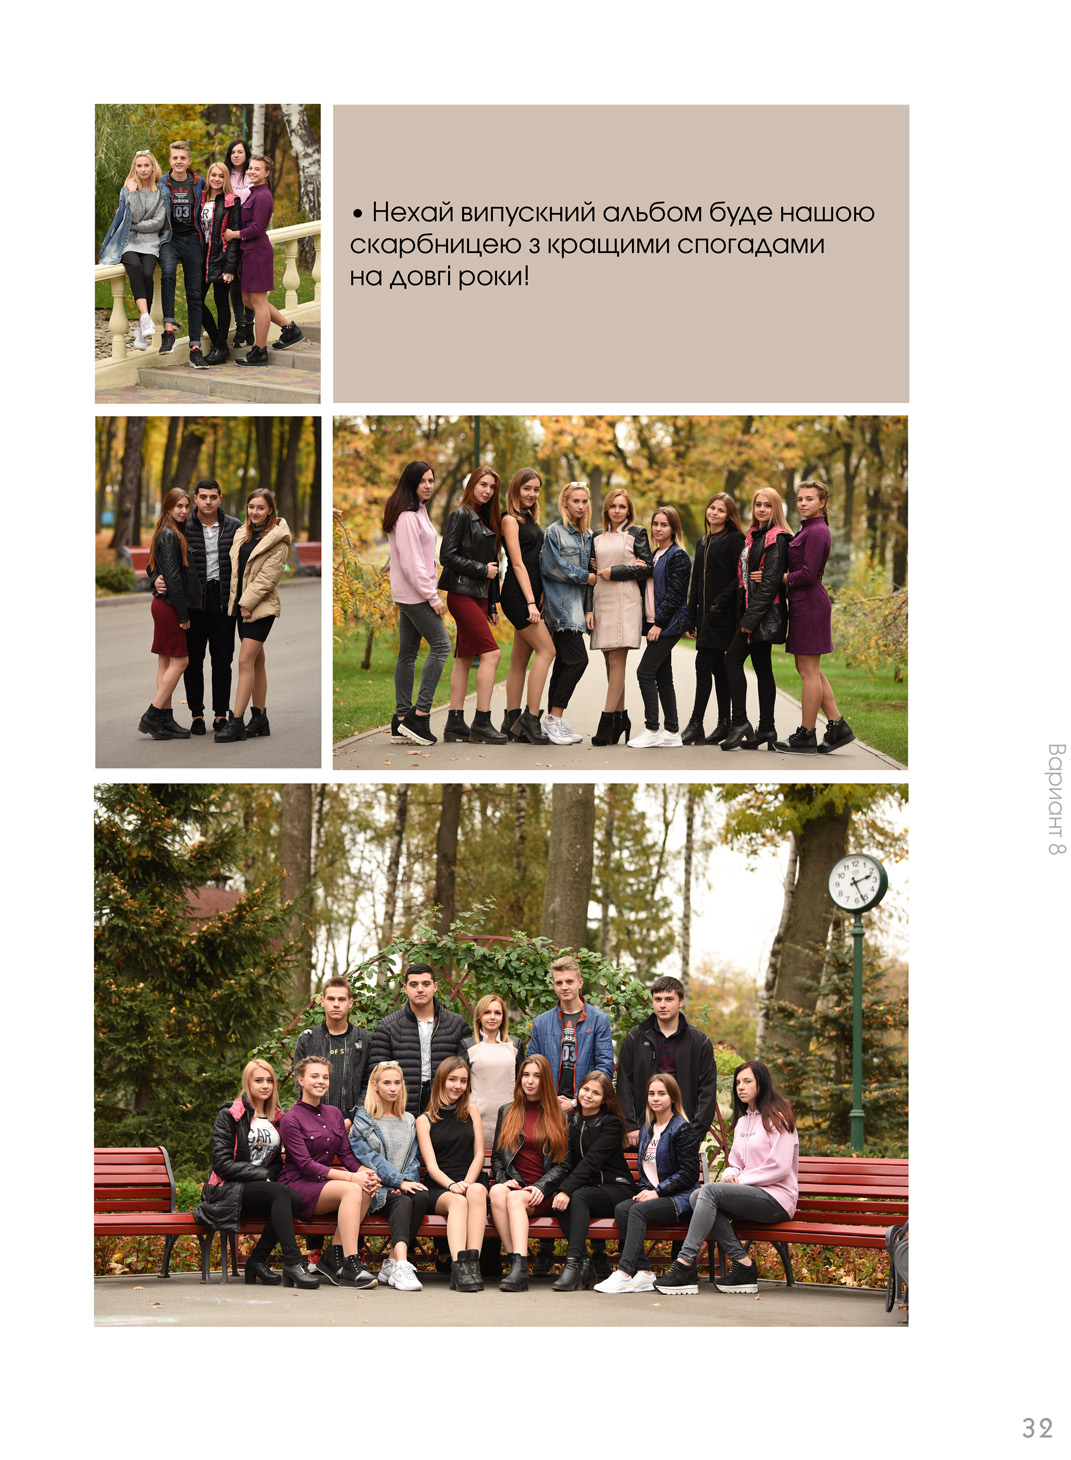 https://school-photo.com.ua/wp-content/uploads/2019/09/32-copy-1.jpg